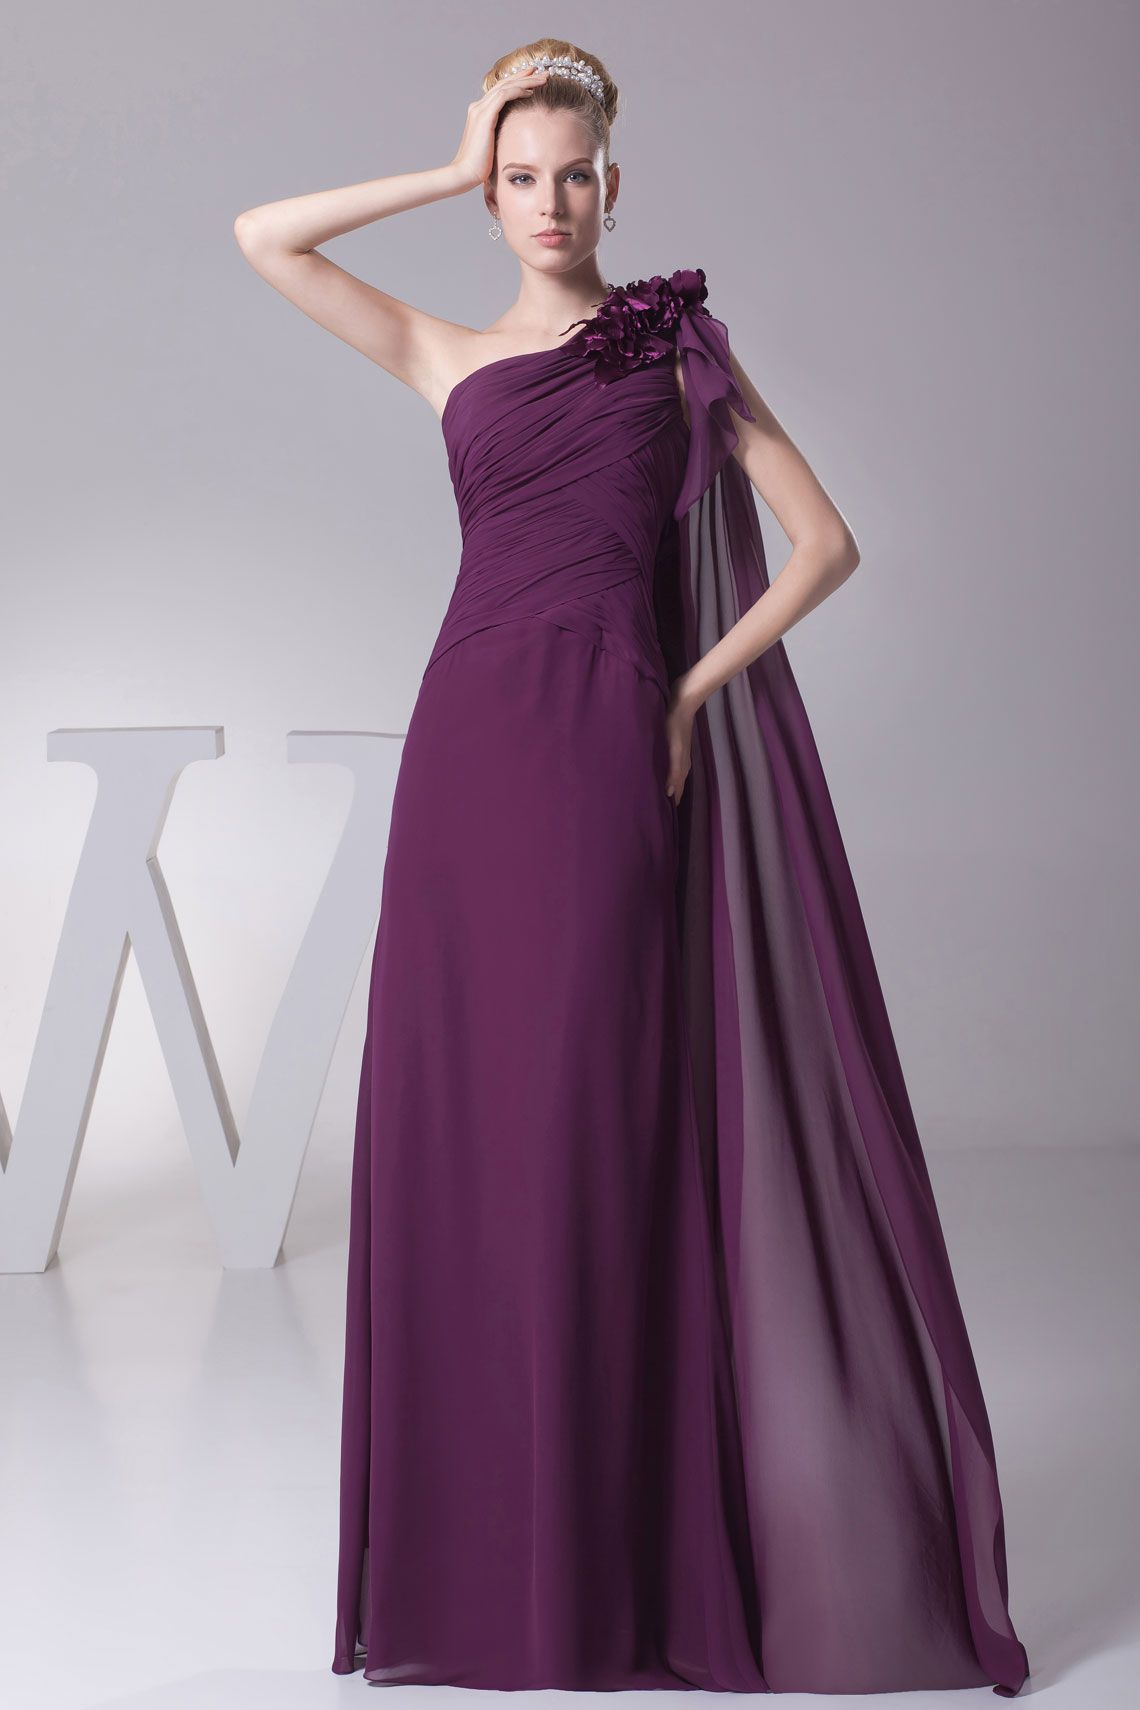 Bridesmaid Dresses Bridesmaid Dresses Bridesmaid Dresses Bridesmaid ...